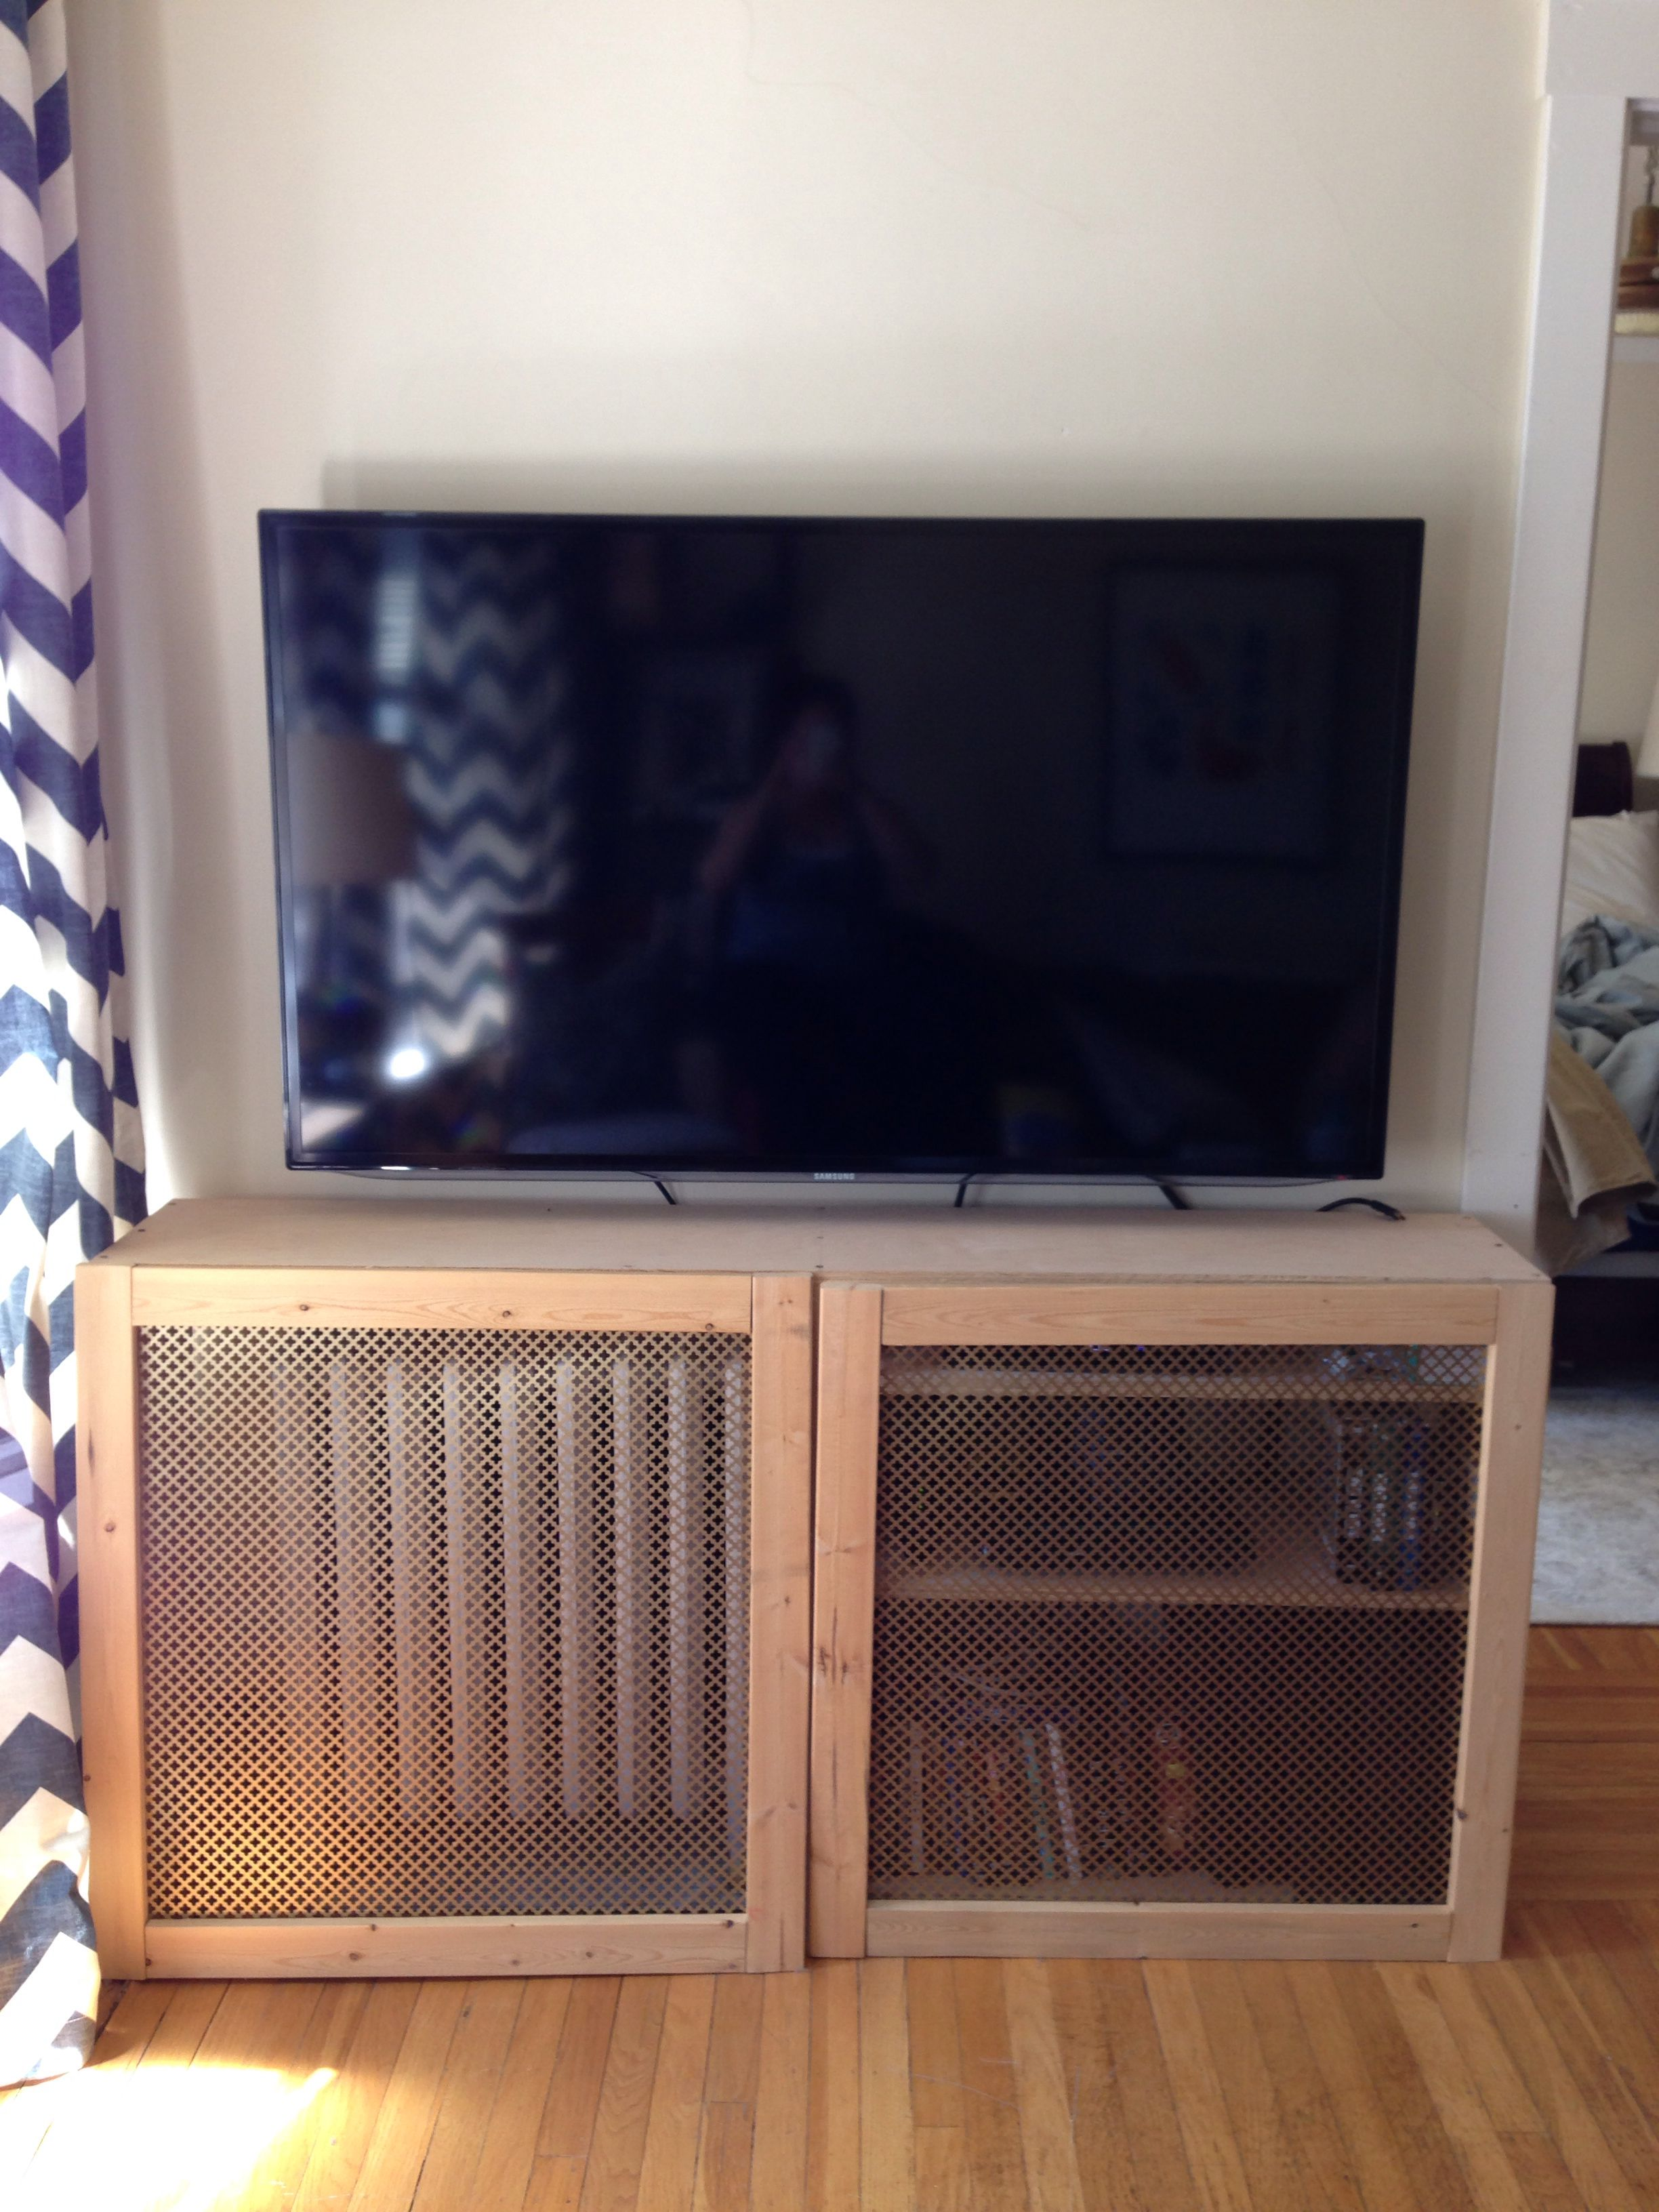 Radiator Cover Shelf Over Flat Screen Tv